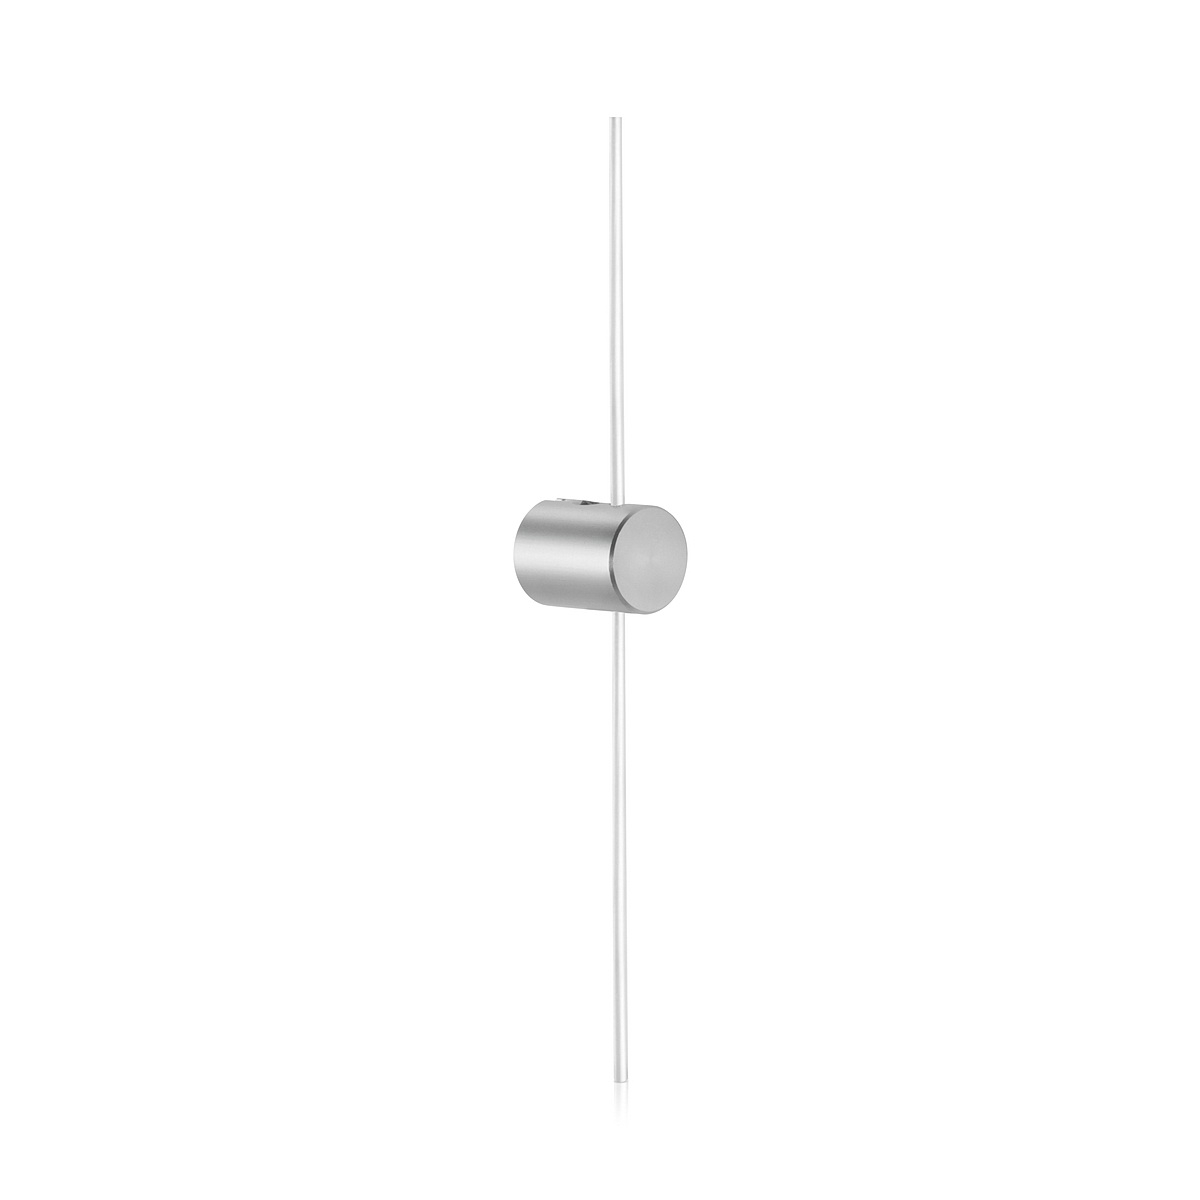 Right Wine Cellar Aluminum Cable Support one end Clear Anodized